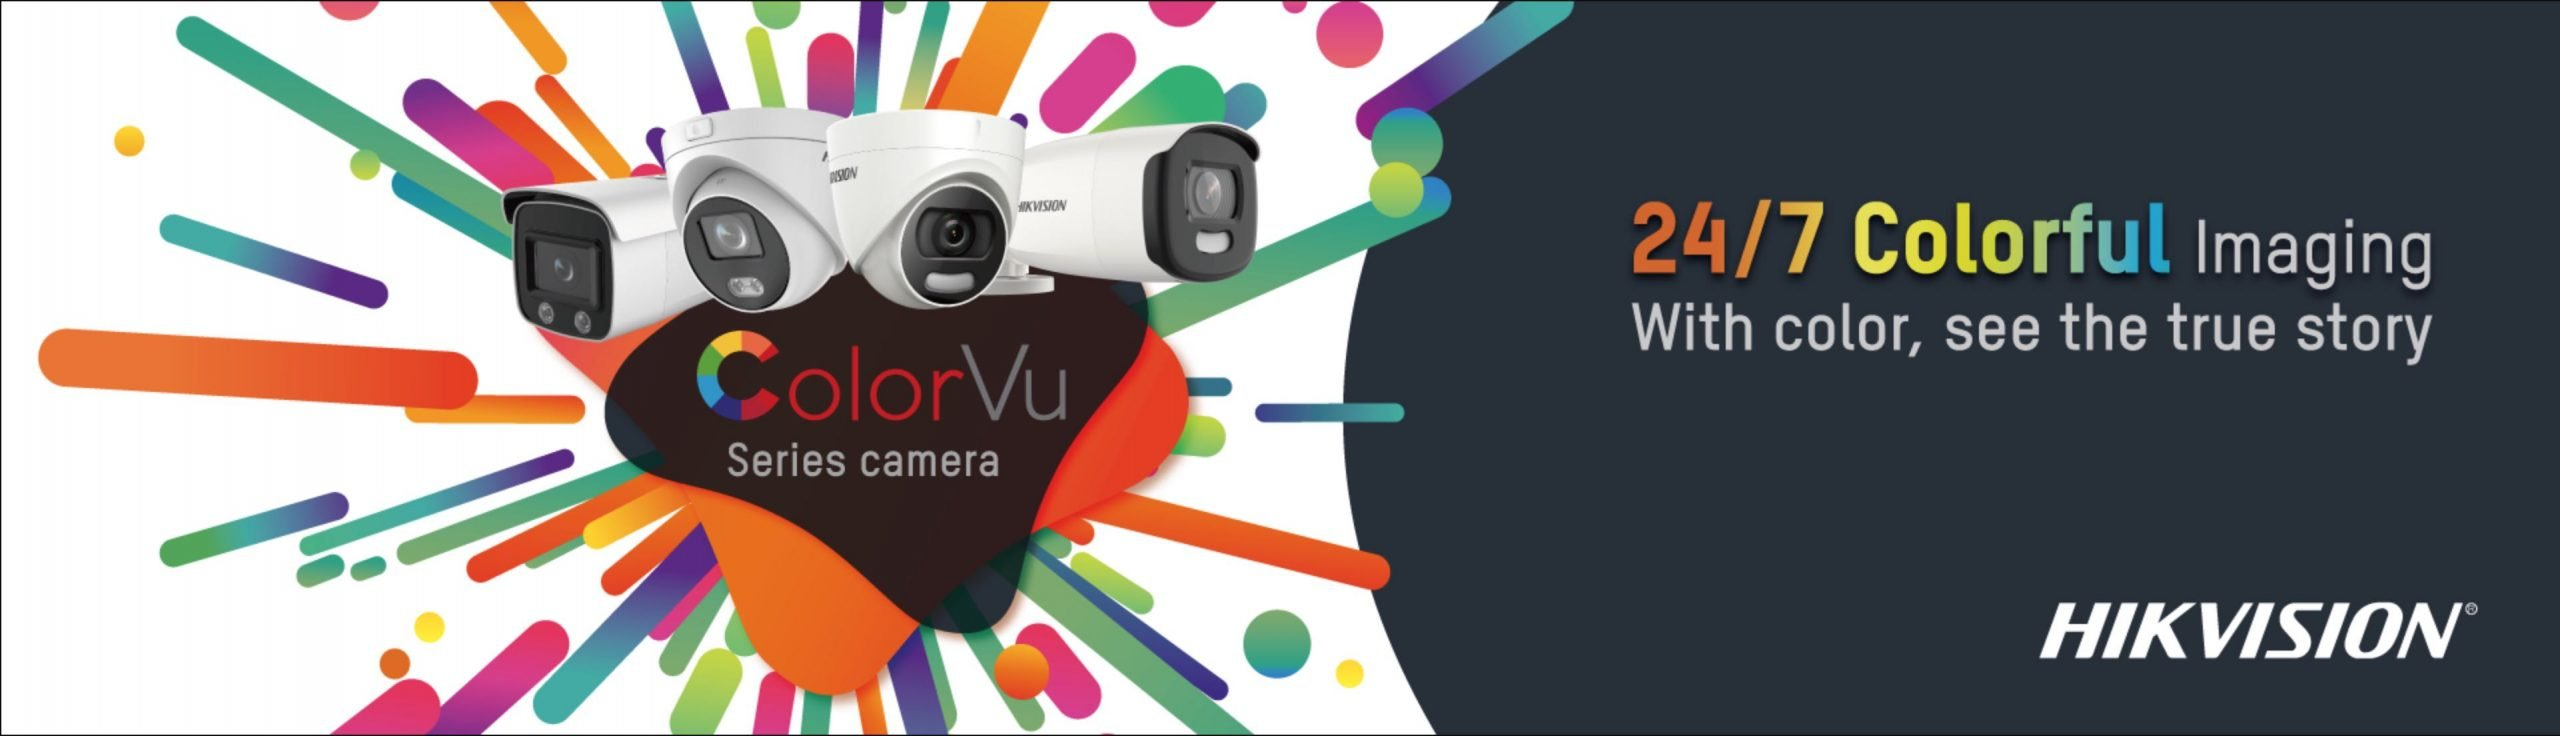 Hikvision ColorVu Camera